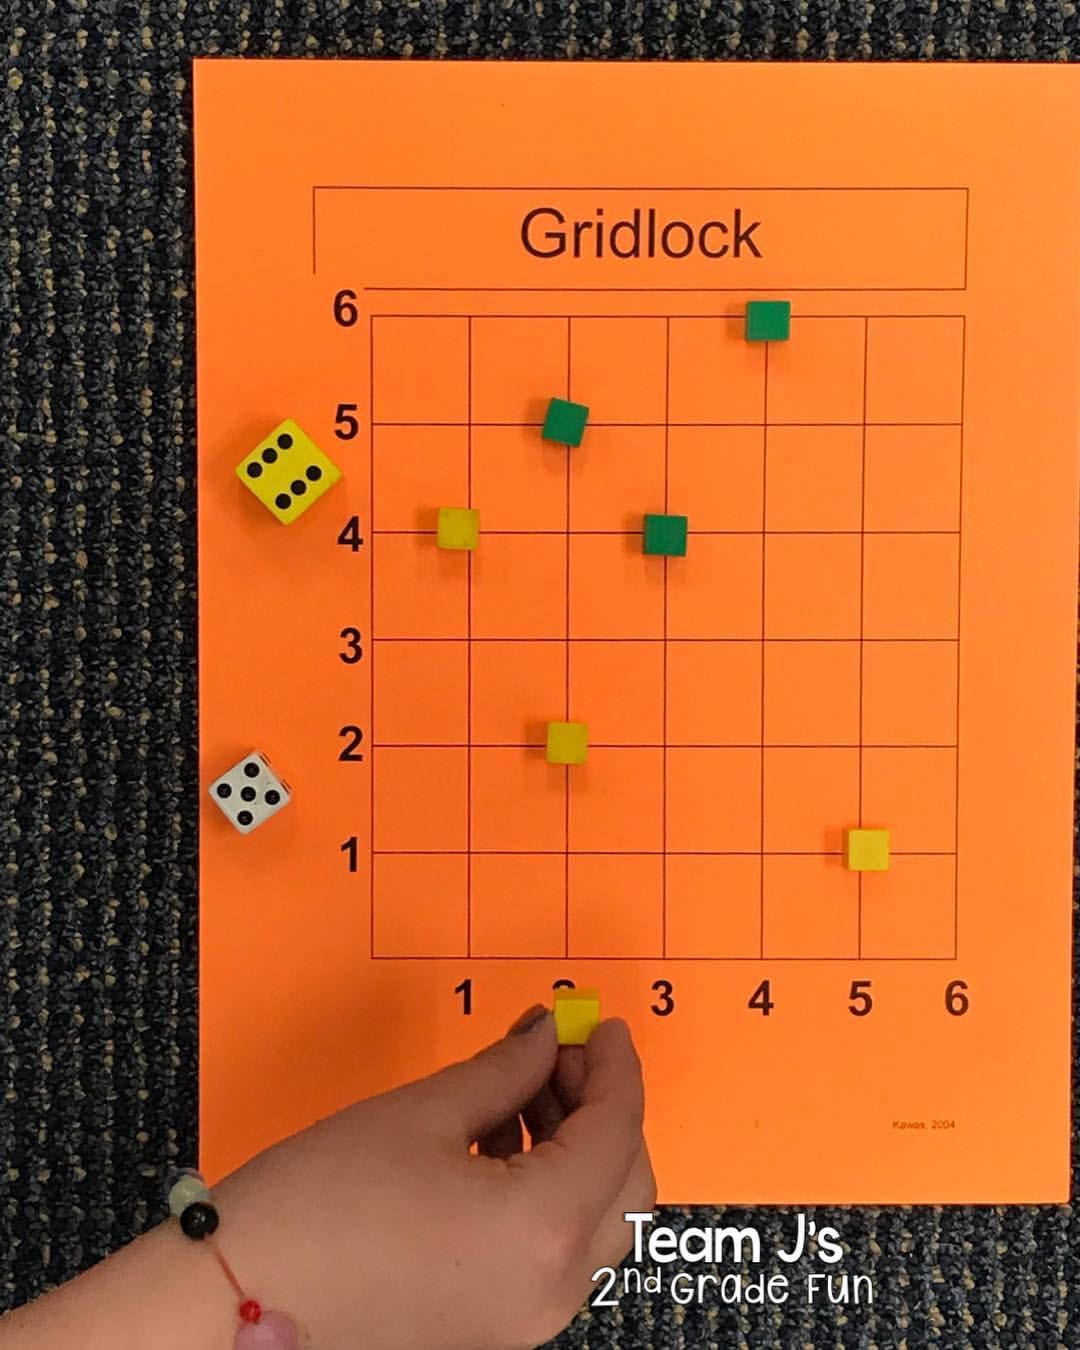 Today We Played The Game Gridlock To Practice Coordinate